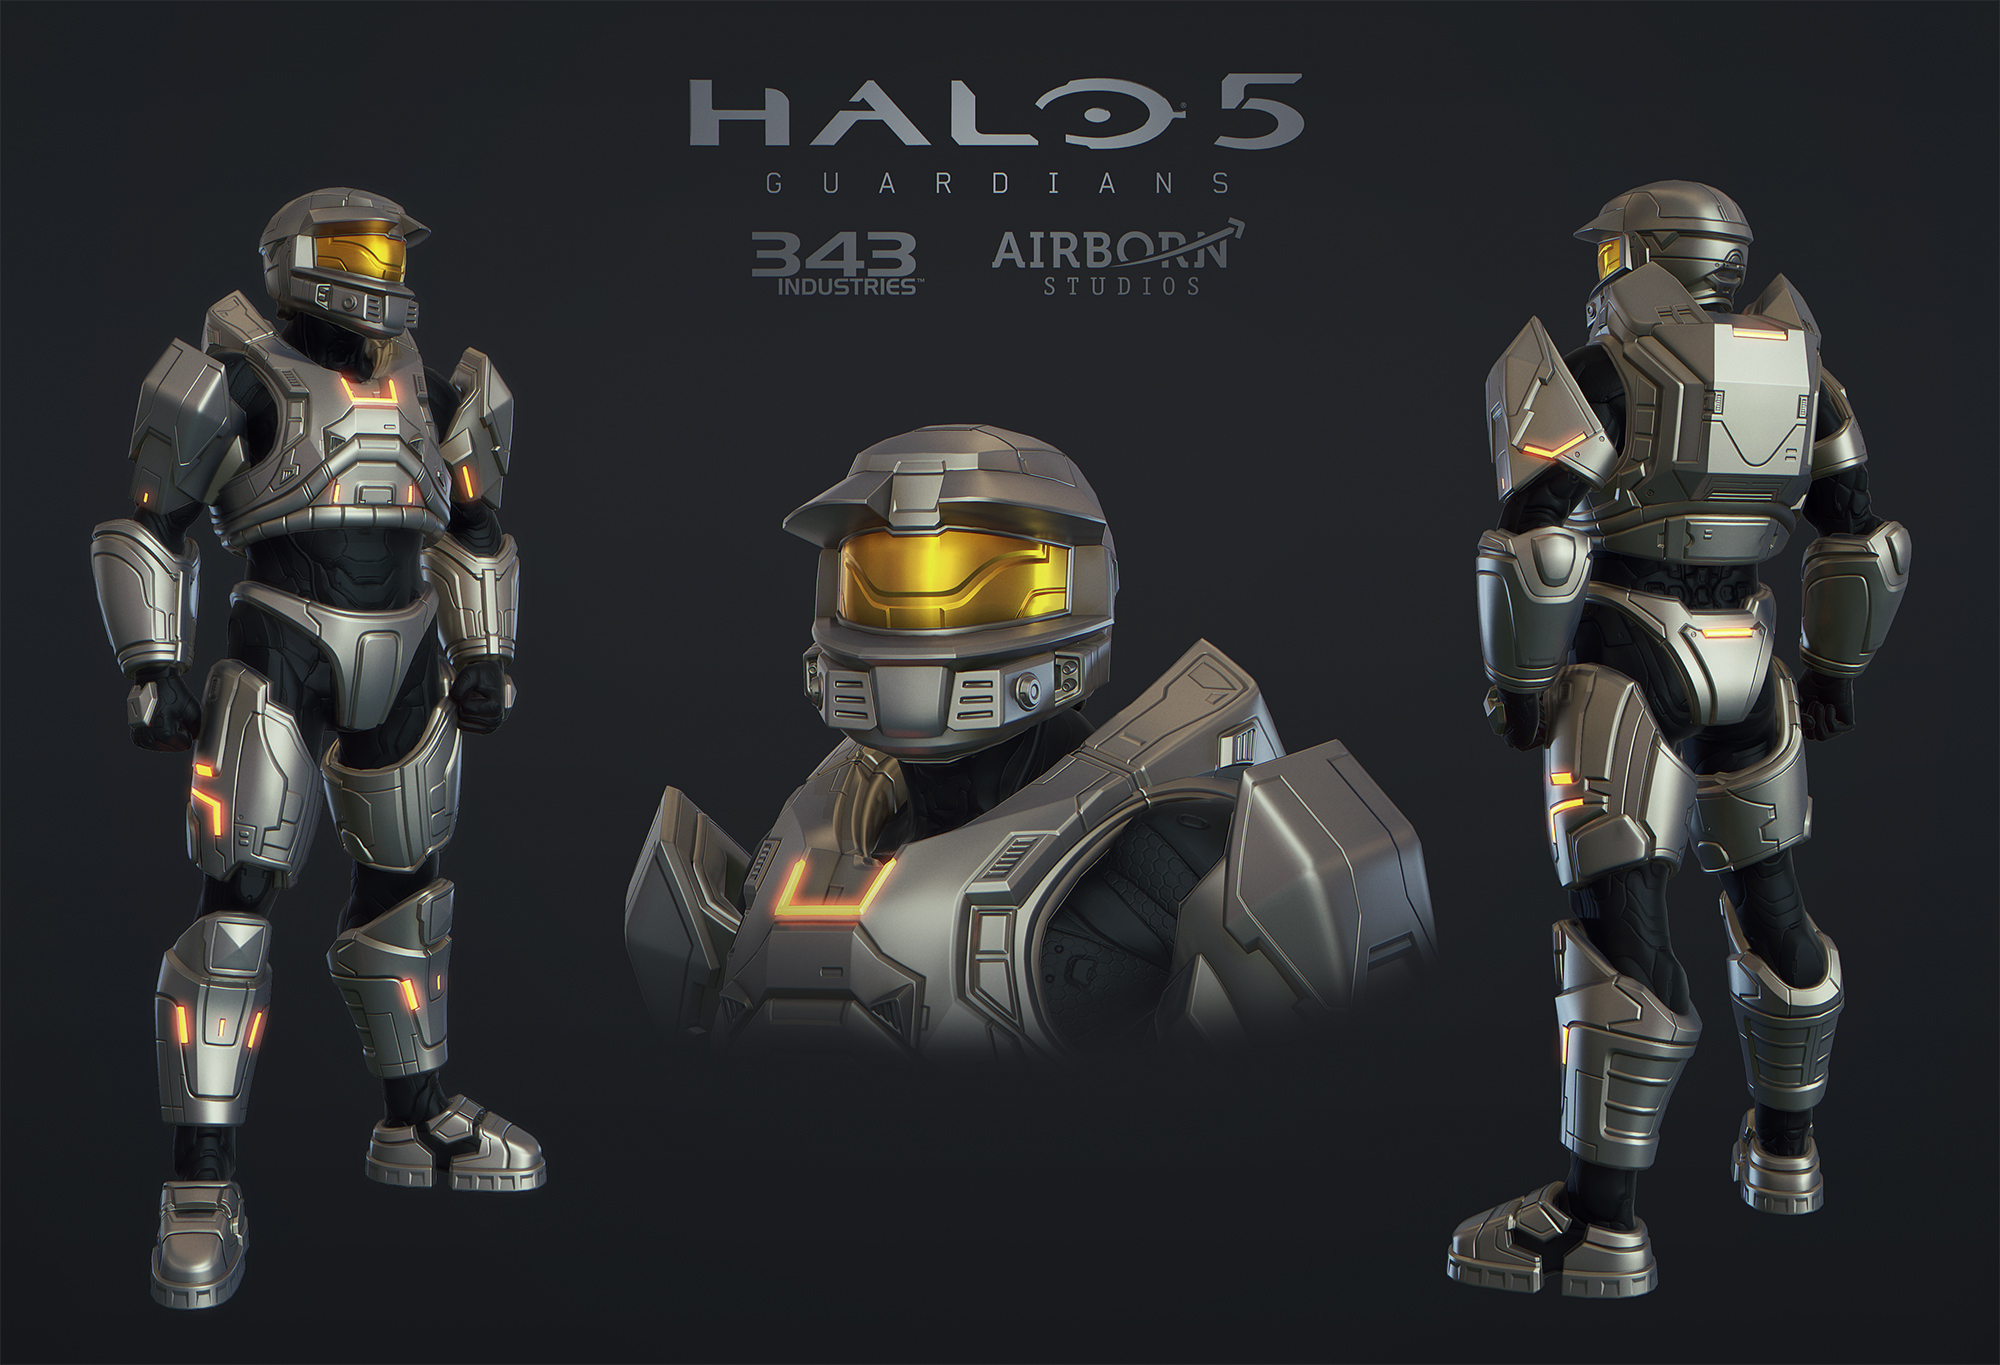 Halo 5 Multiplayer Armor Mark V Alpha 587220058 on This Was A Collaborative Project I Did With One